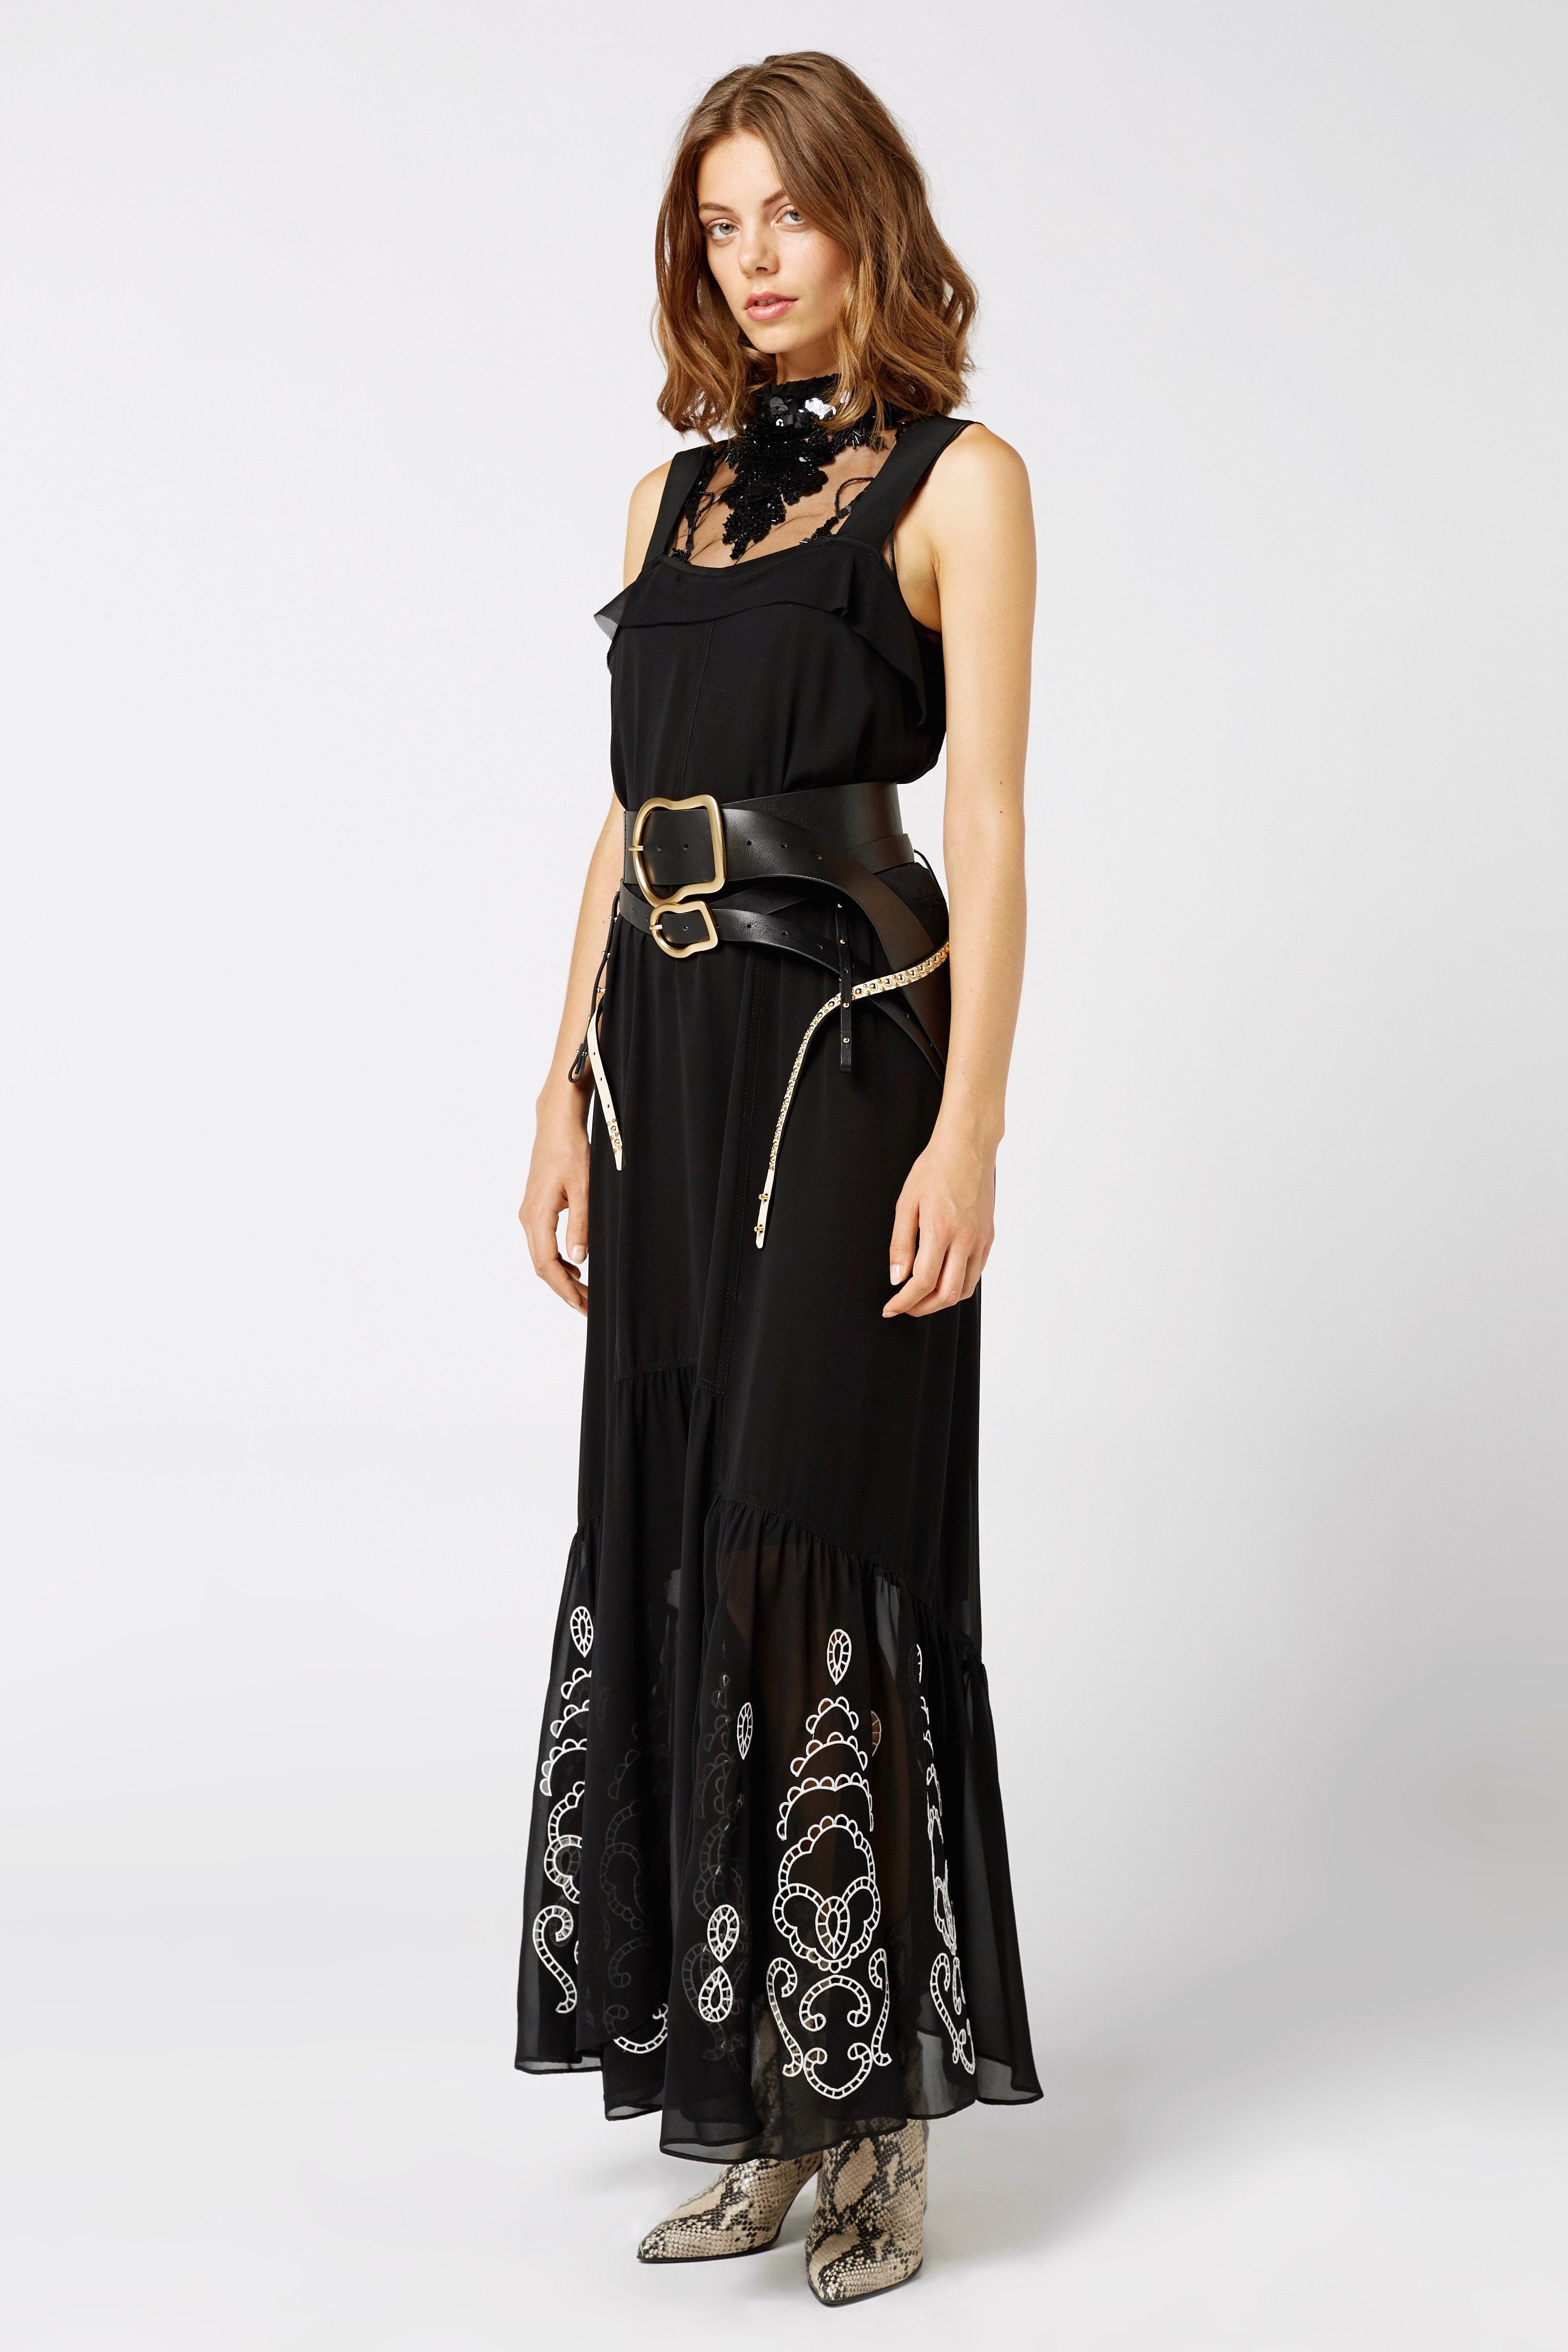 Outlet Best Store To Get Cheap Big Sale EMBROIDERED ROMANCE dress 3 Dorothee Schumacher Cheap Footlocker aWiTWo